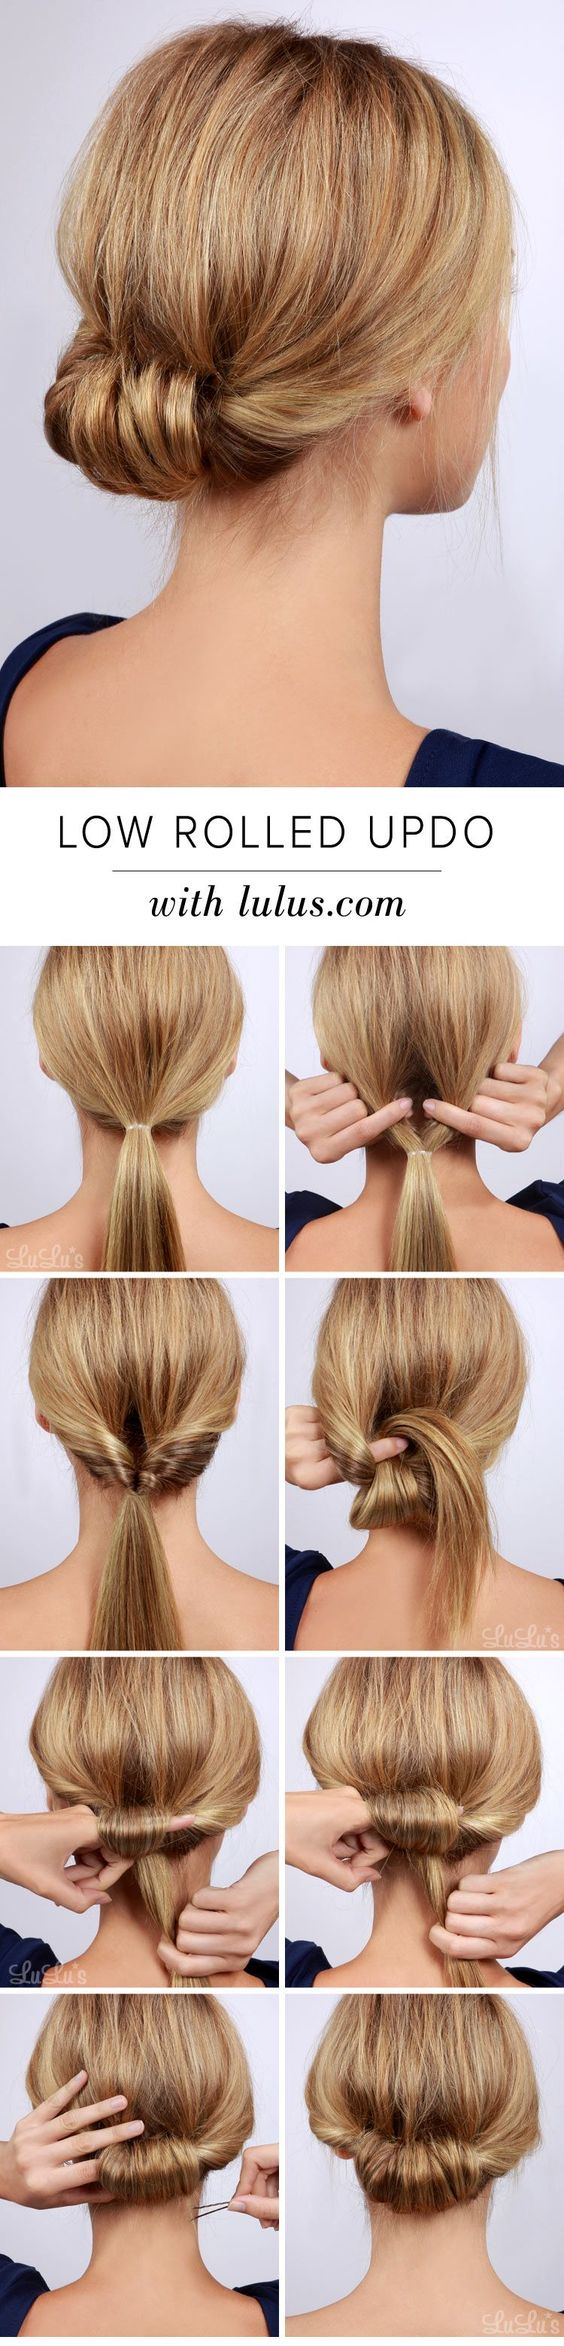 LuLu*s How-To: Low Rolled Updo Hair Tutorial at LuLus.com!